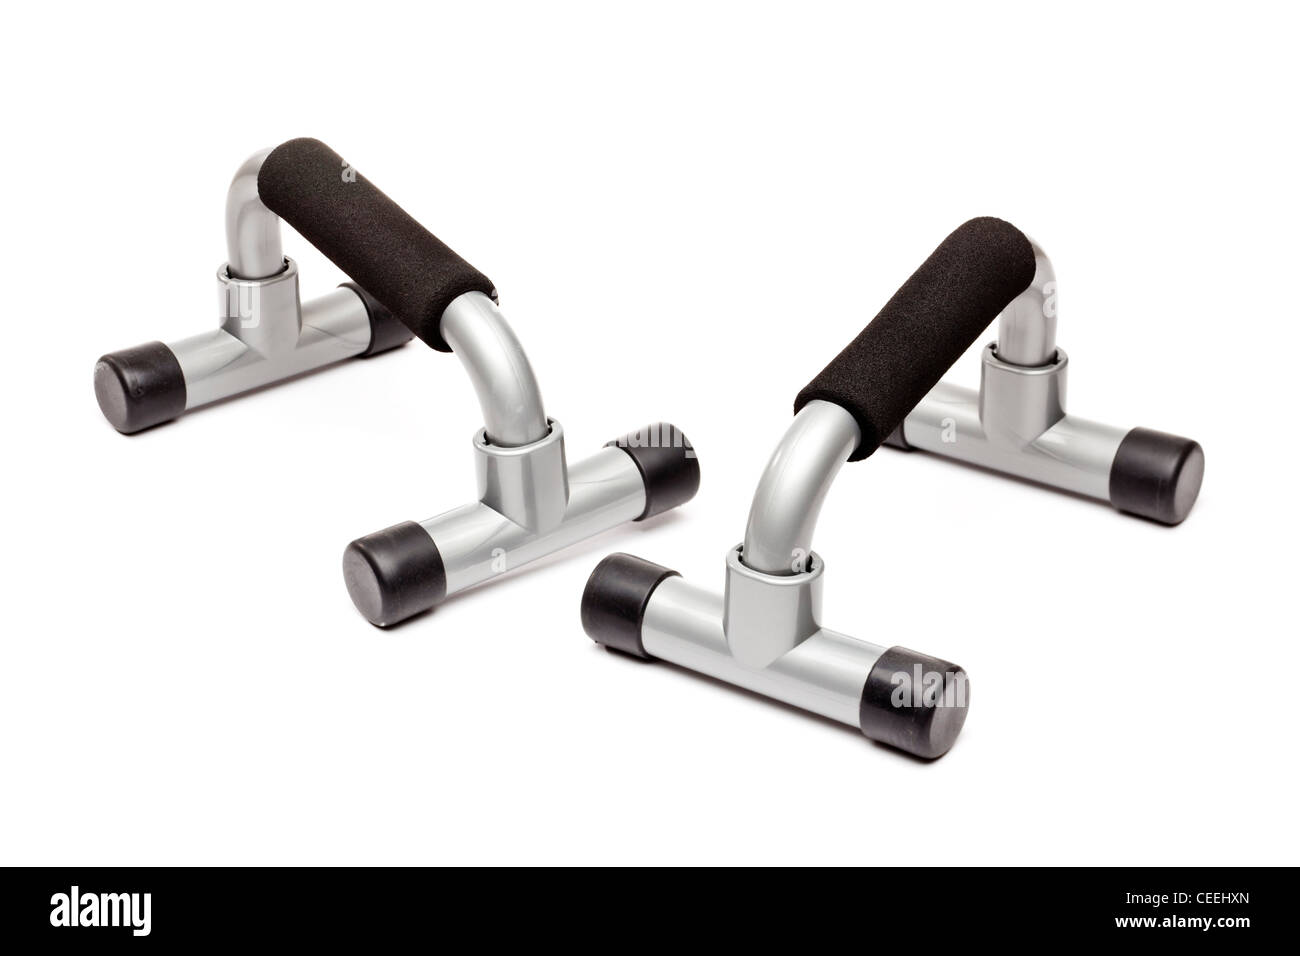 Push up bars on white background - Stock Image